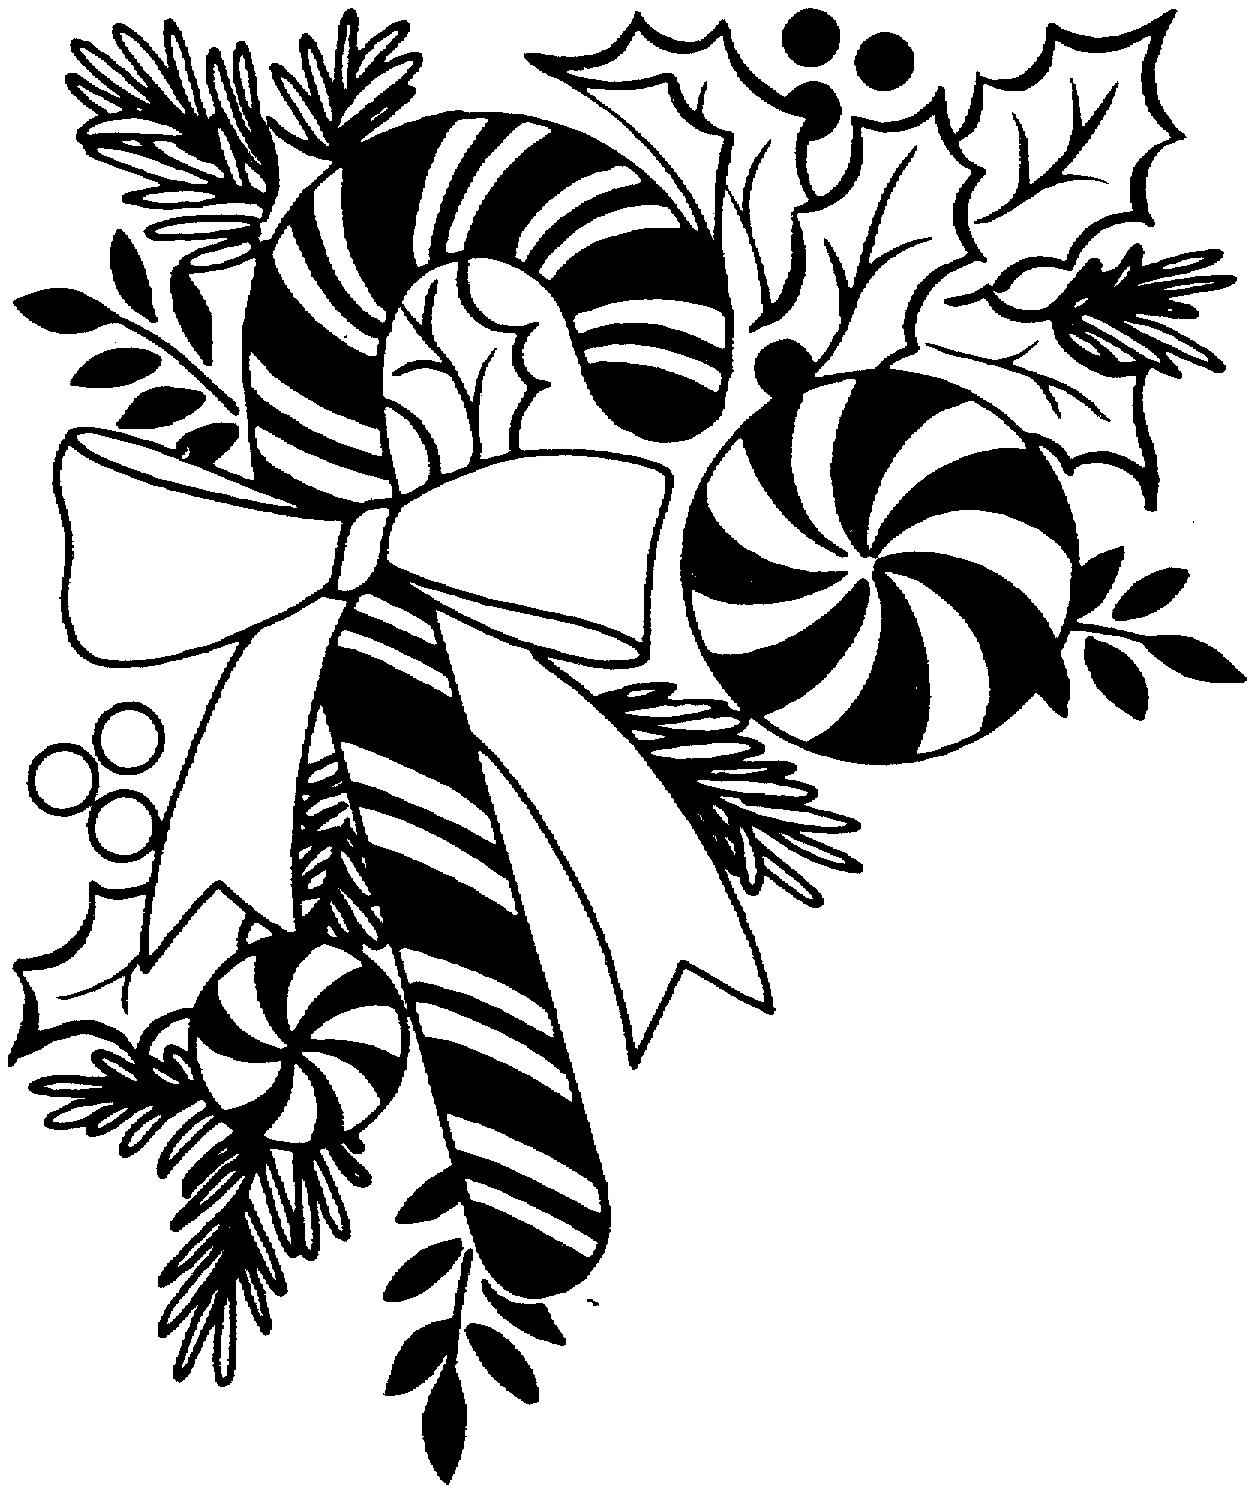 Fonts Icons Clipart Black And White Christmas Designs 001 100